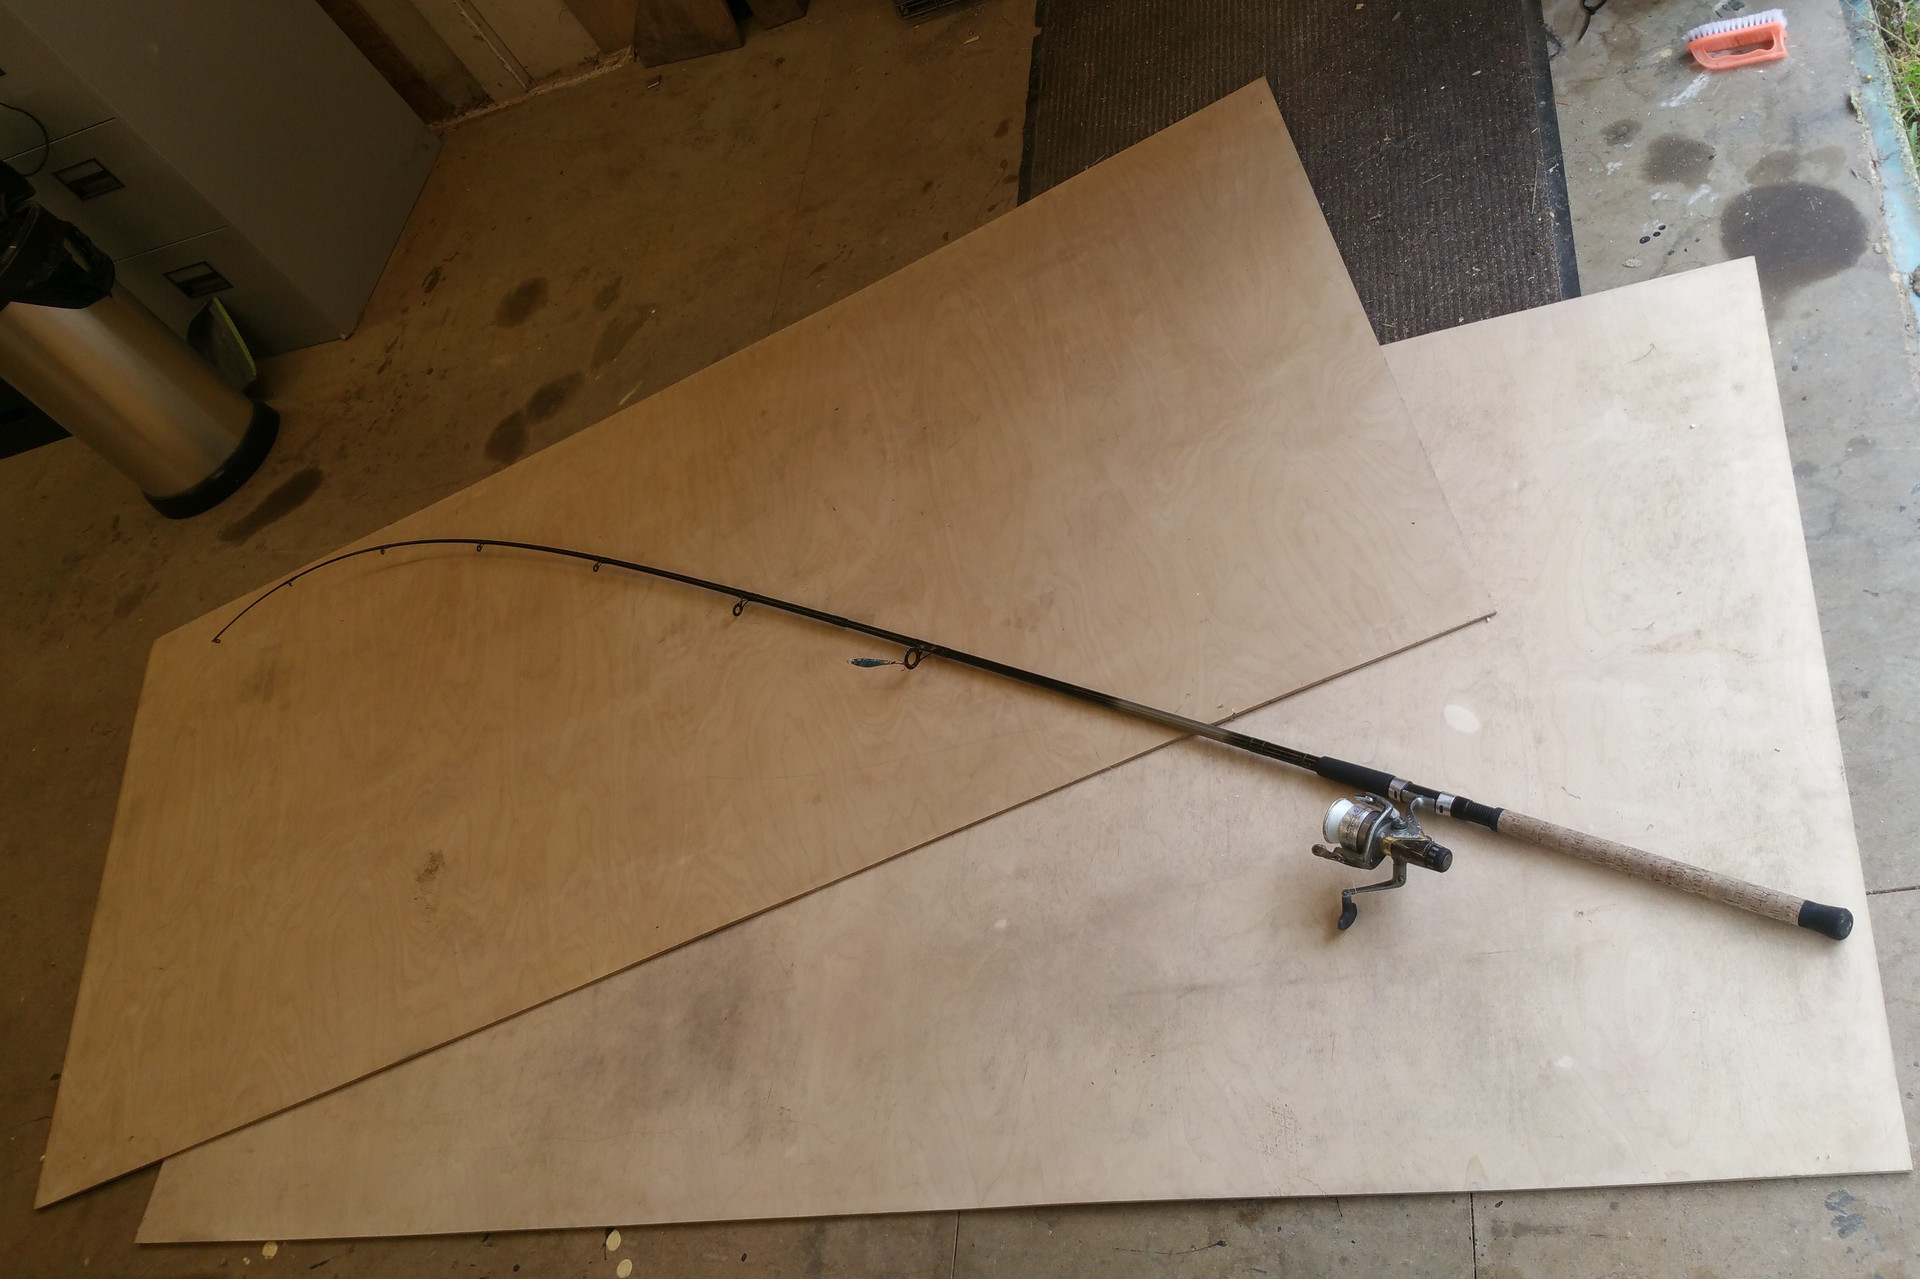 Two Sheets of Ply and a Fishing Rod